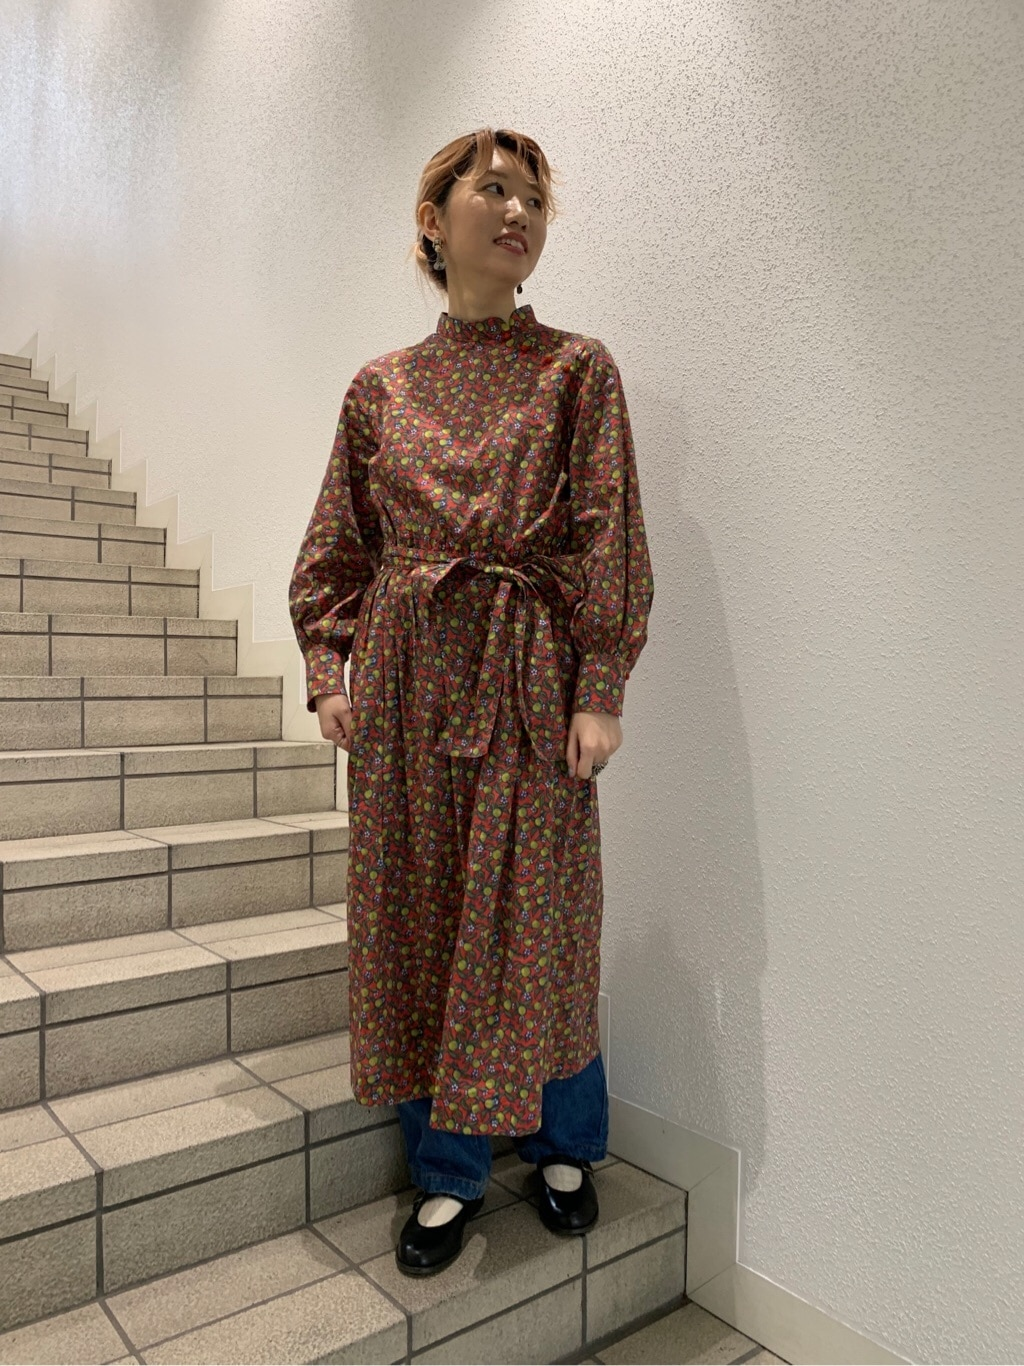 Dot and Stripes CHILD WOMAN 新宿ミロード 身長:160cm 2019.12.12